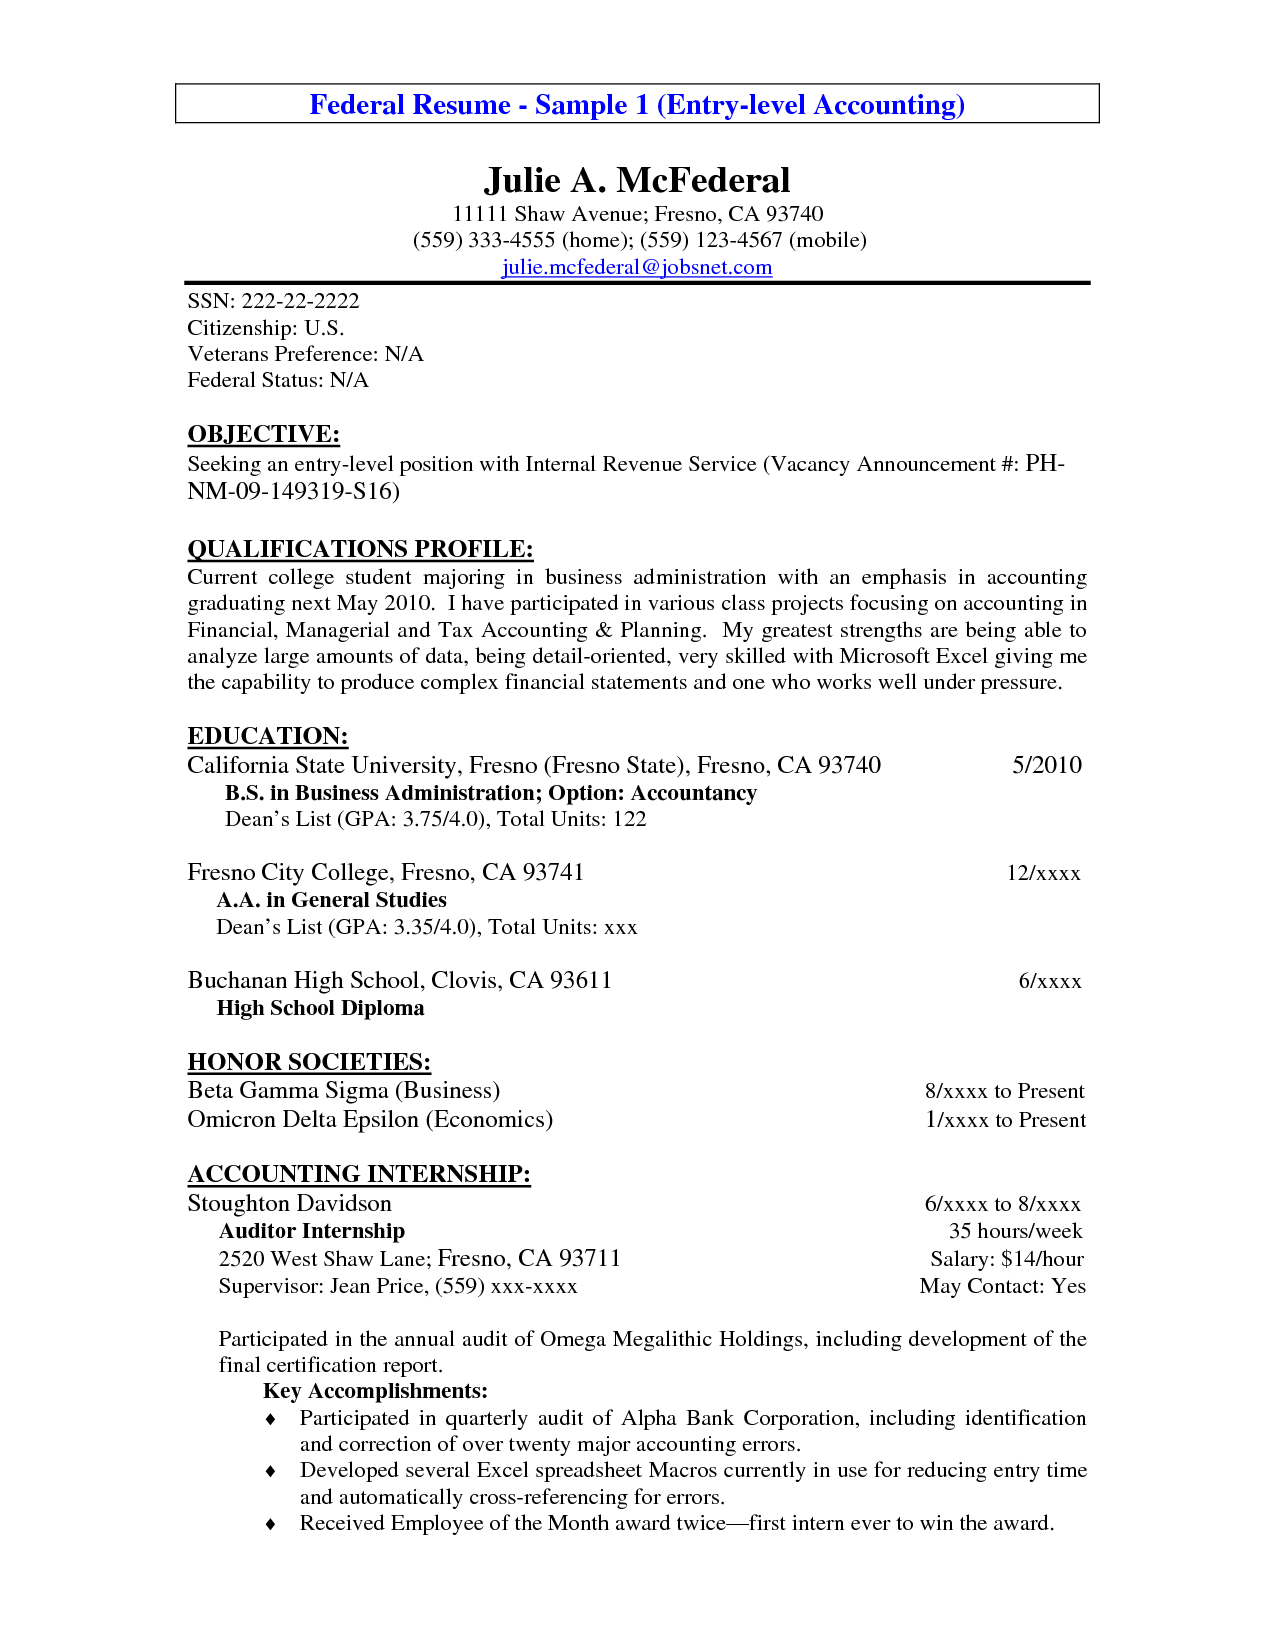 Accounting Resume Objective Statements